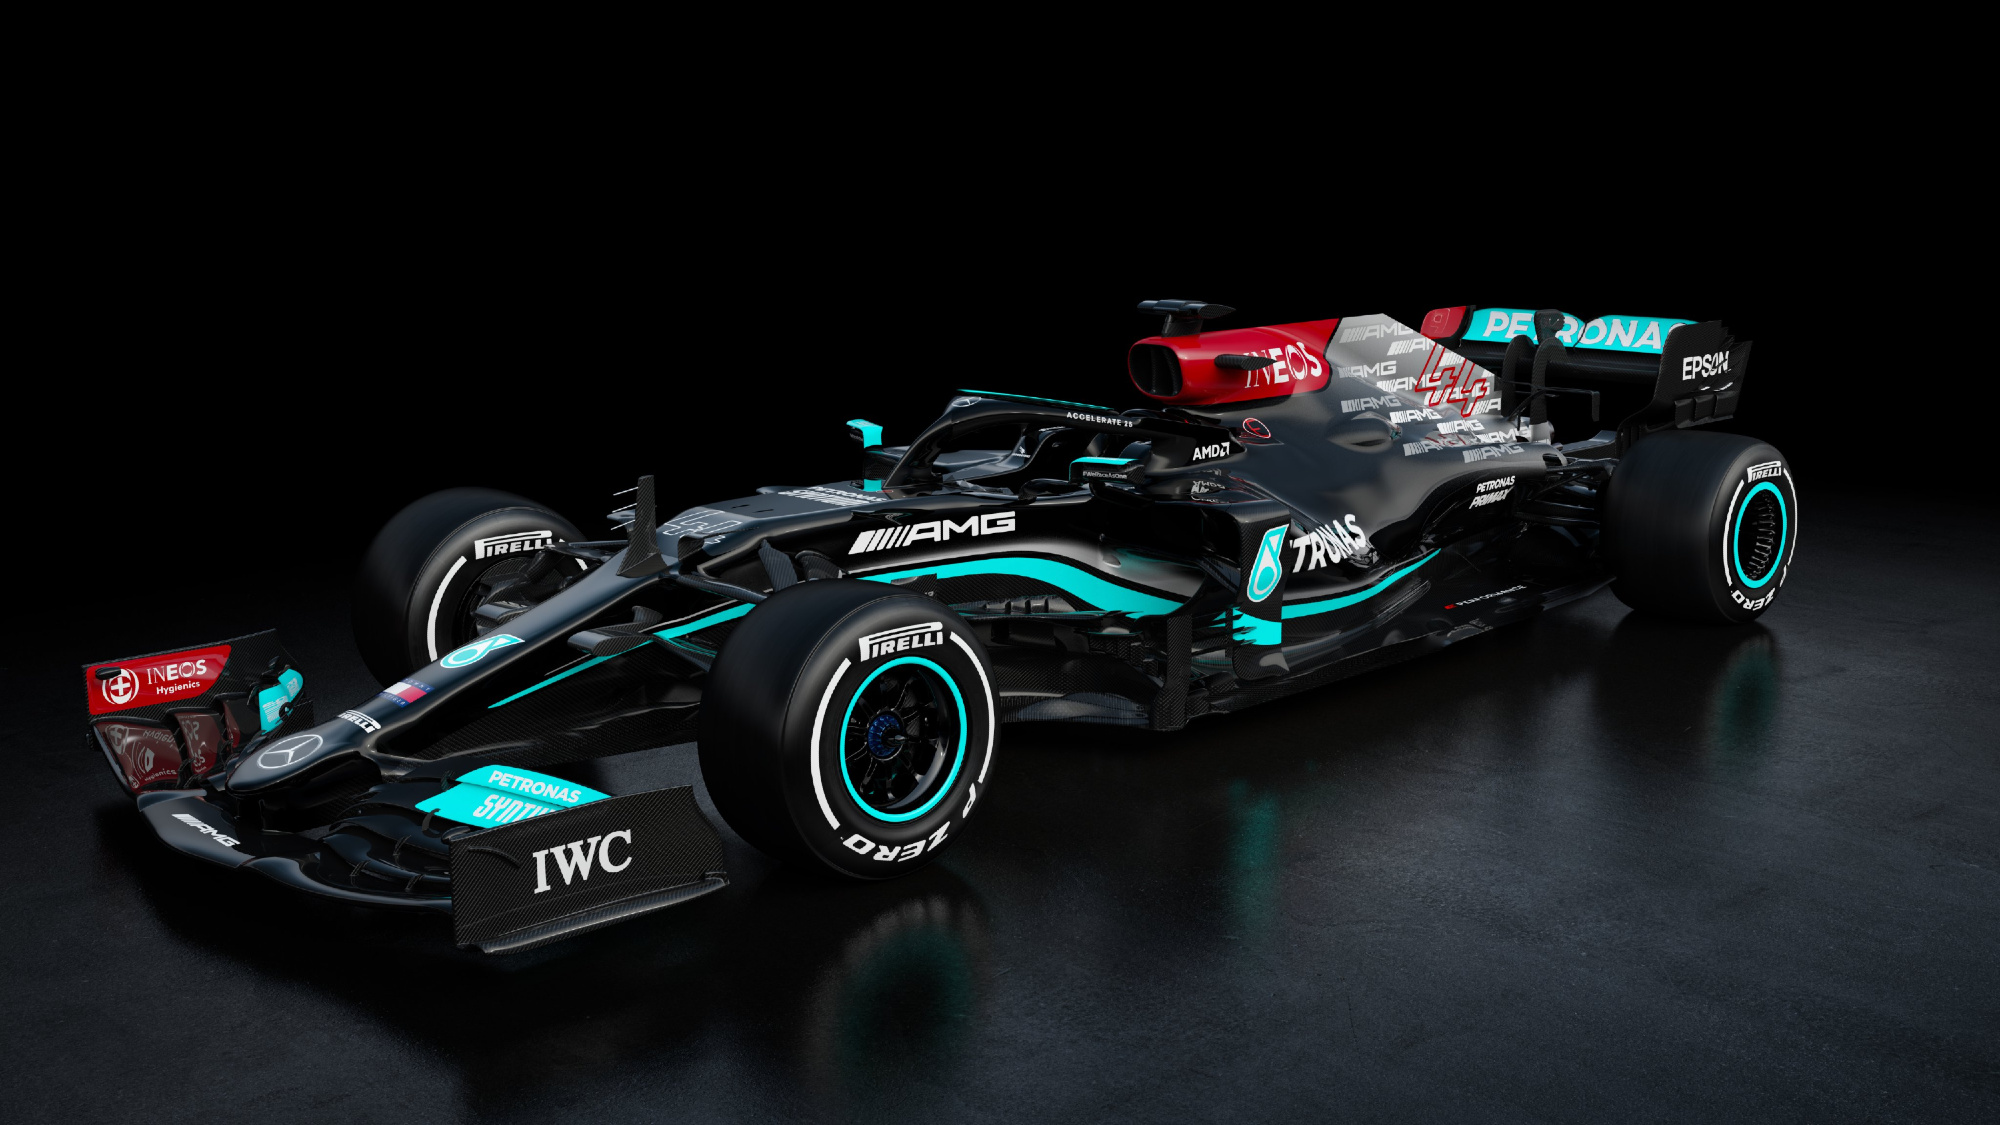 Mercedes reveals 2021 Formula 1 car with new AMG livery